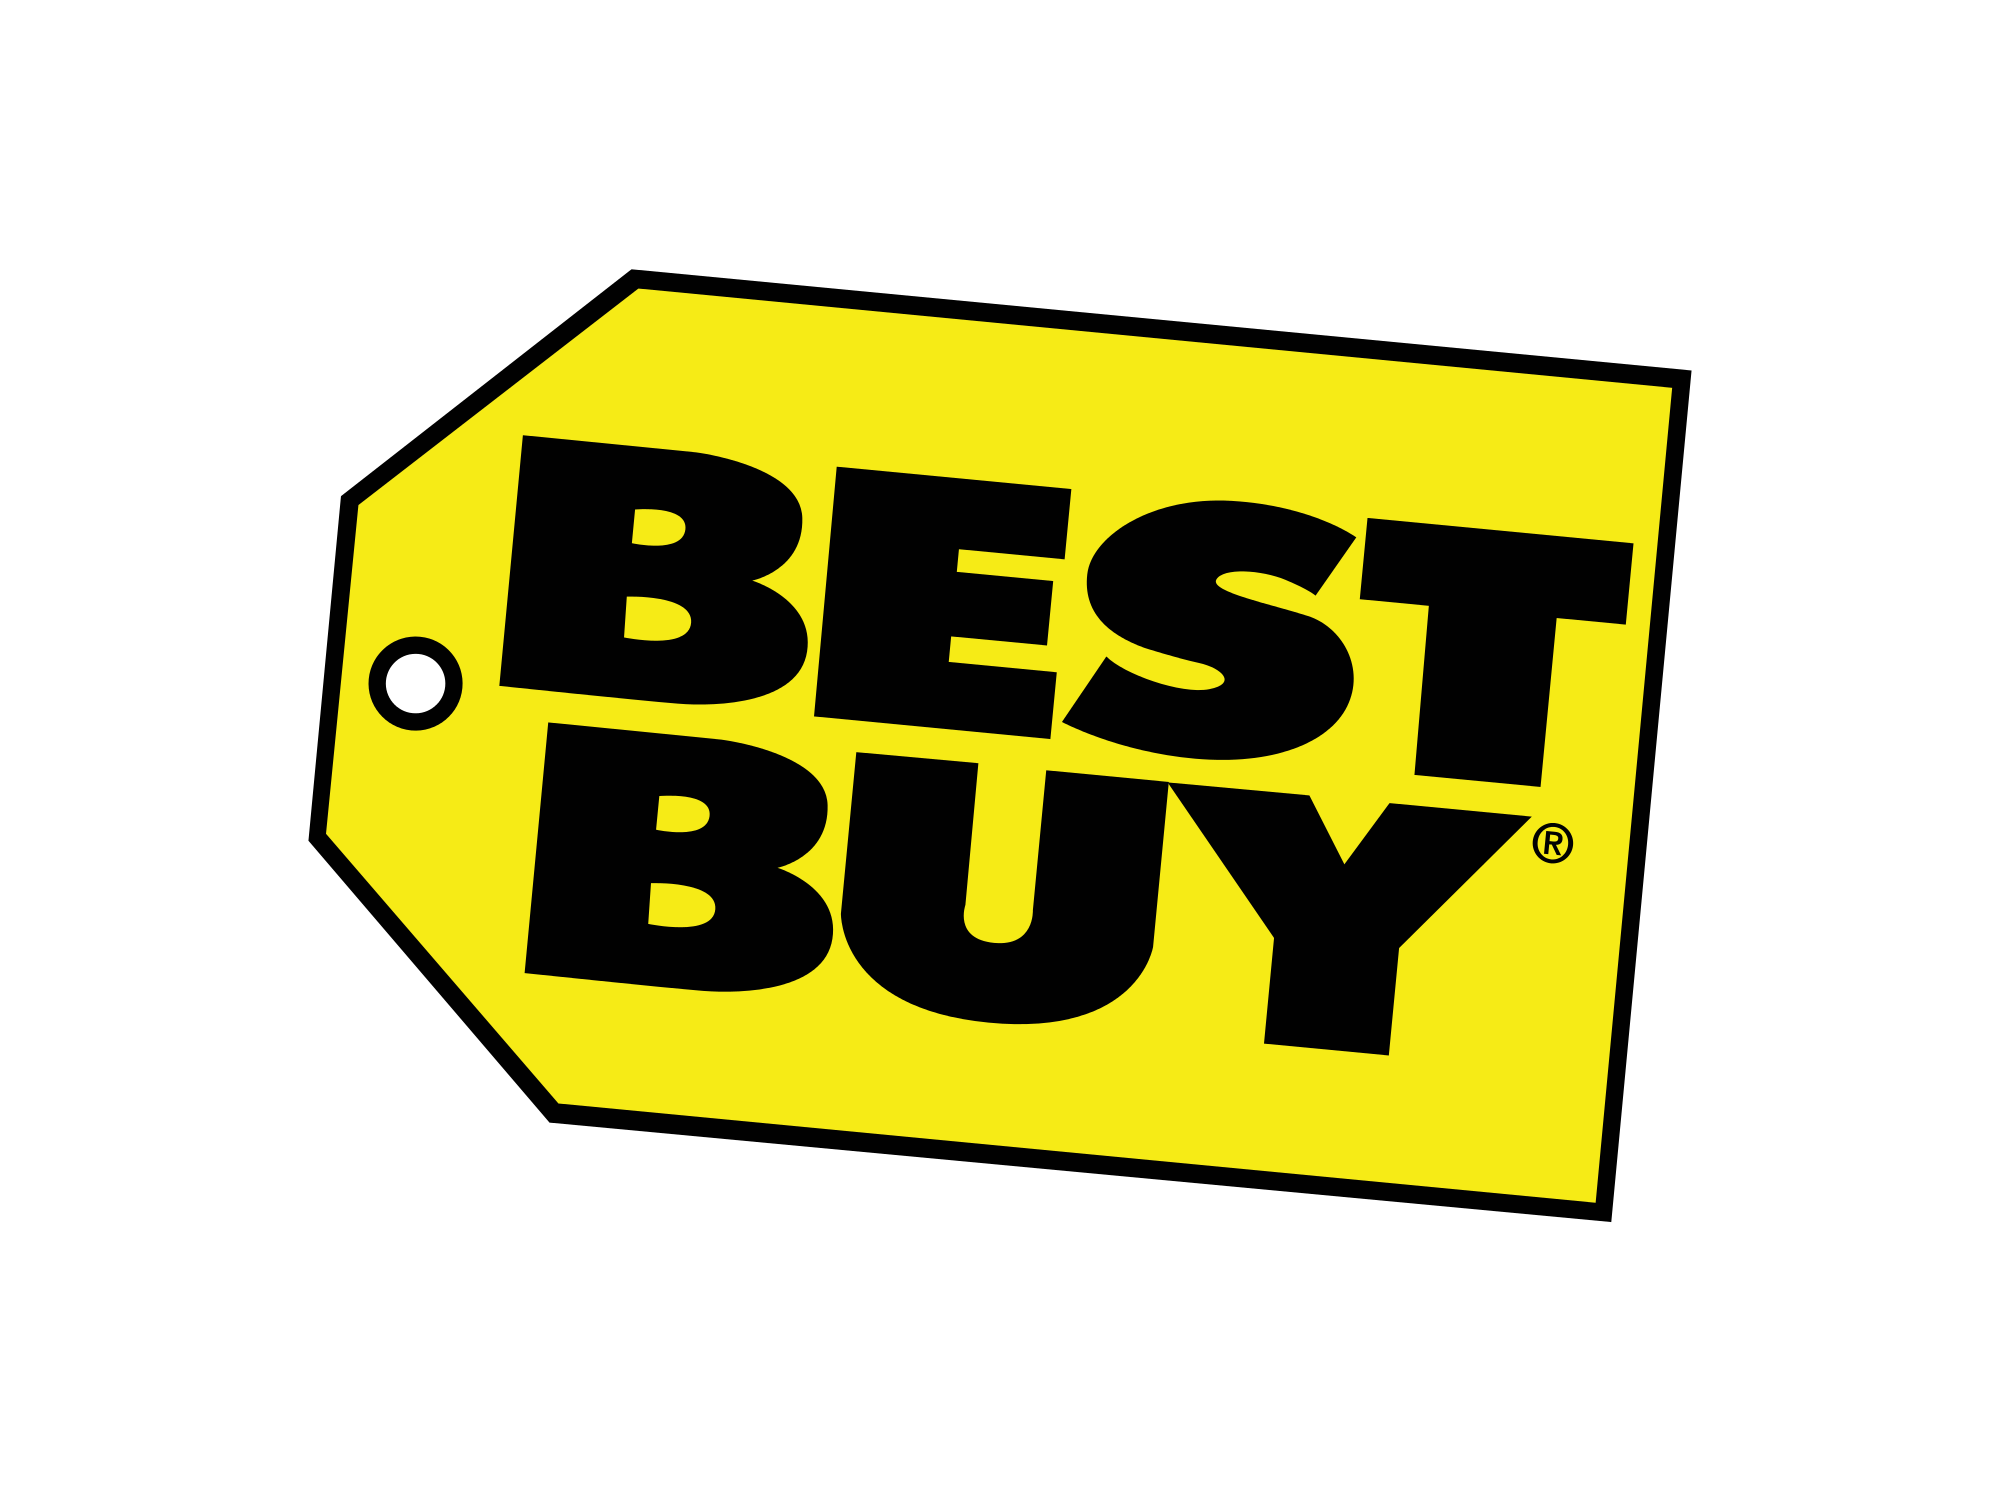 Best buy logo png. Arbutus solutions